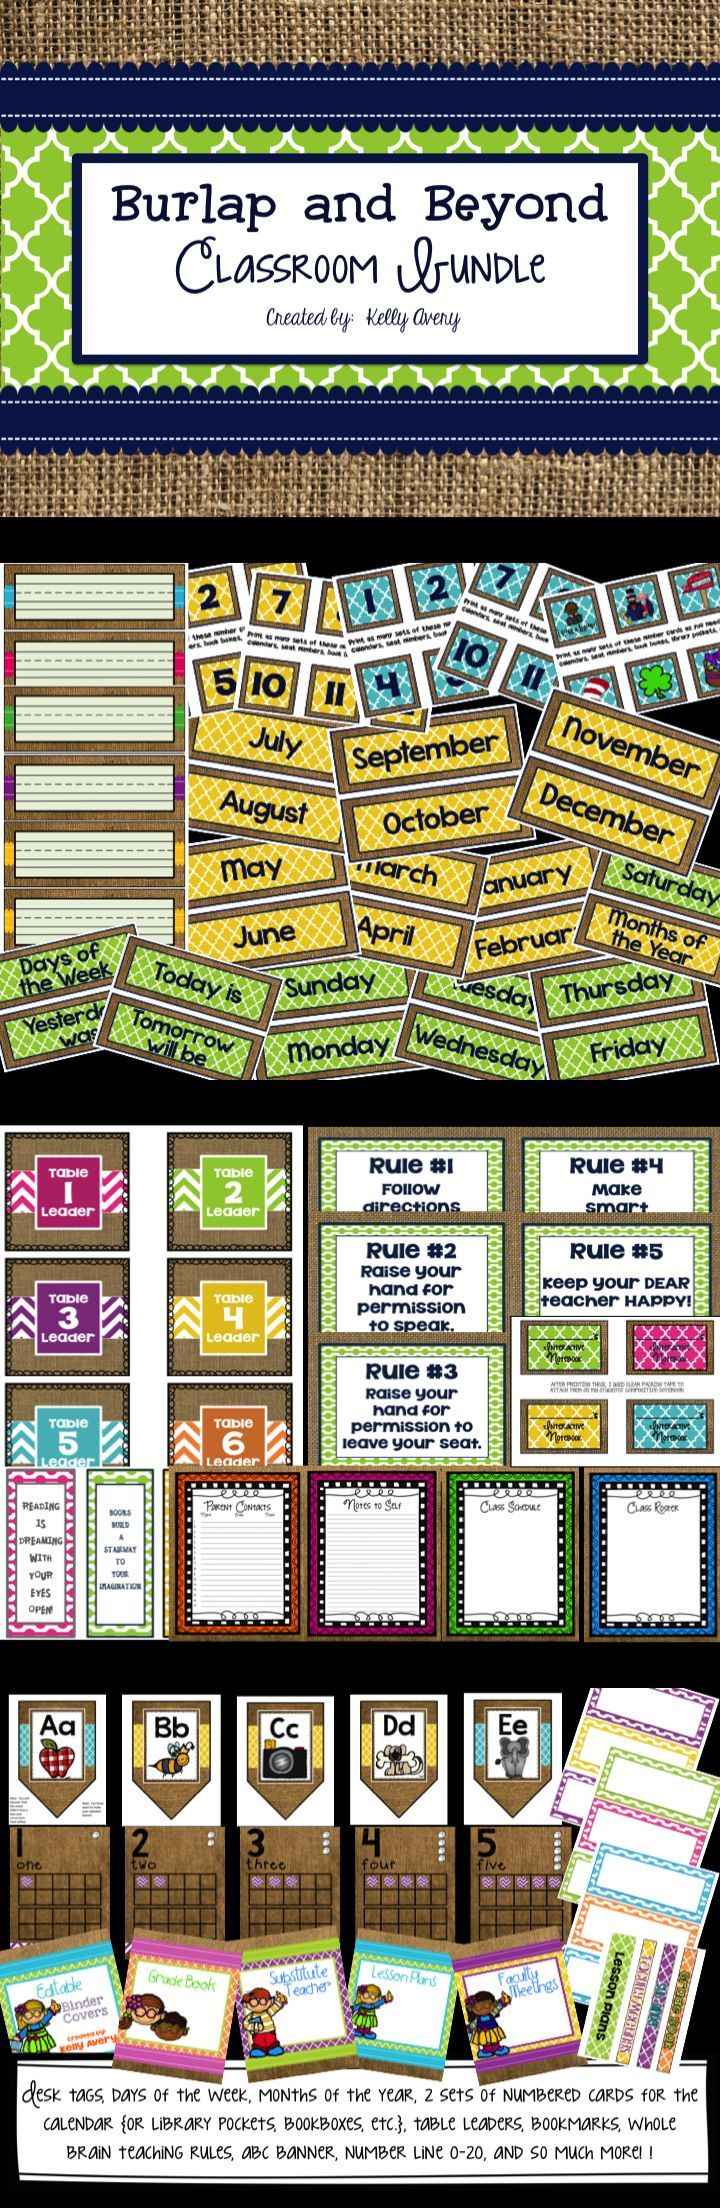 Burlap Themed Classroom Decor - This burlap themed classroom decor bundle includes everything a teacher needs to organize their classroom.  Click here to discover classroom printables guaranteed to give your classroom design on a dime!